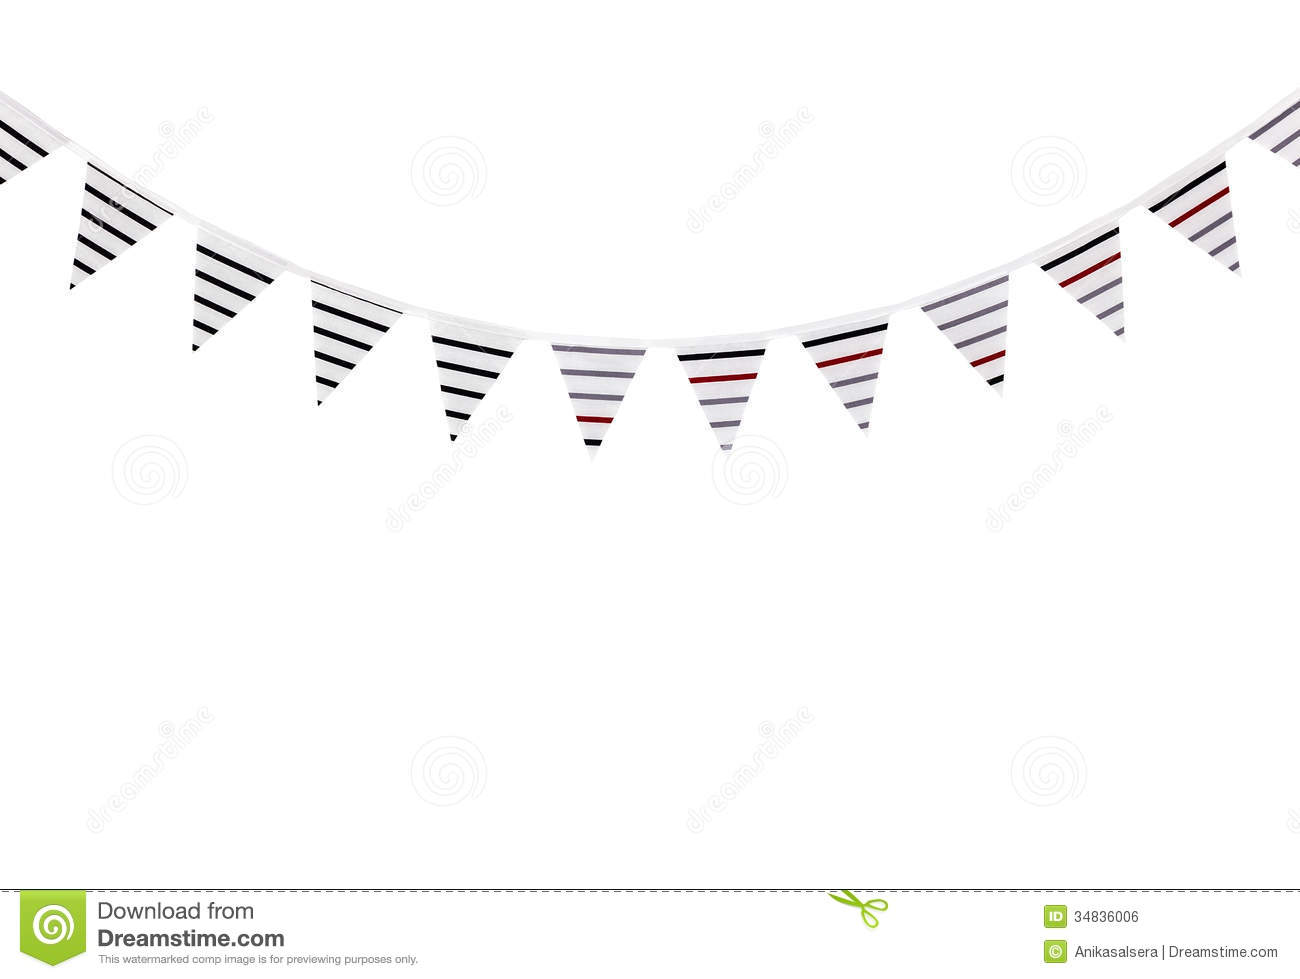 Black Ink Splat Isolated On A White Background Vector 1169417 additionally Race 20clipart 20starting 20line likewise Stock Illustration Laurel Leaves Wreath as well Drawn 20background 20retro in addition Royalty Free Stock Photography Music Notes Background Image38195367. on banner clip art transparent background